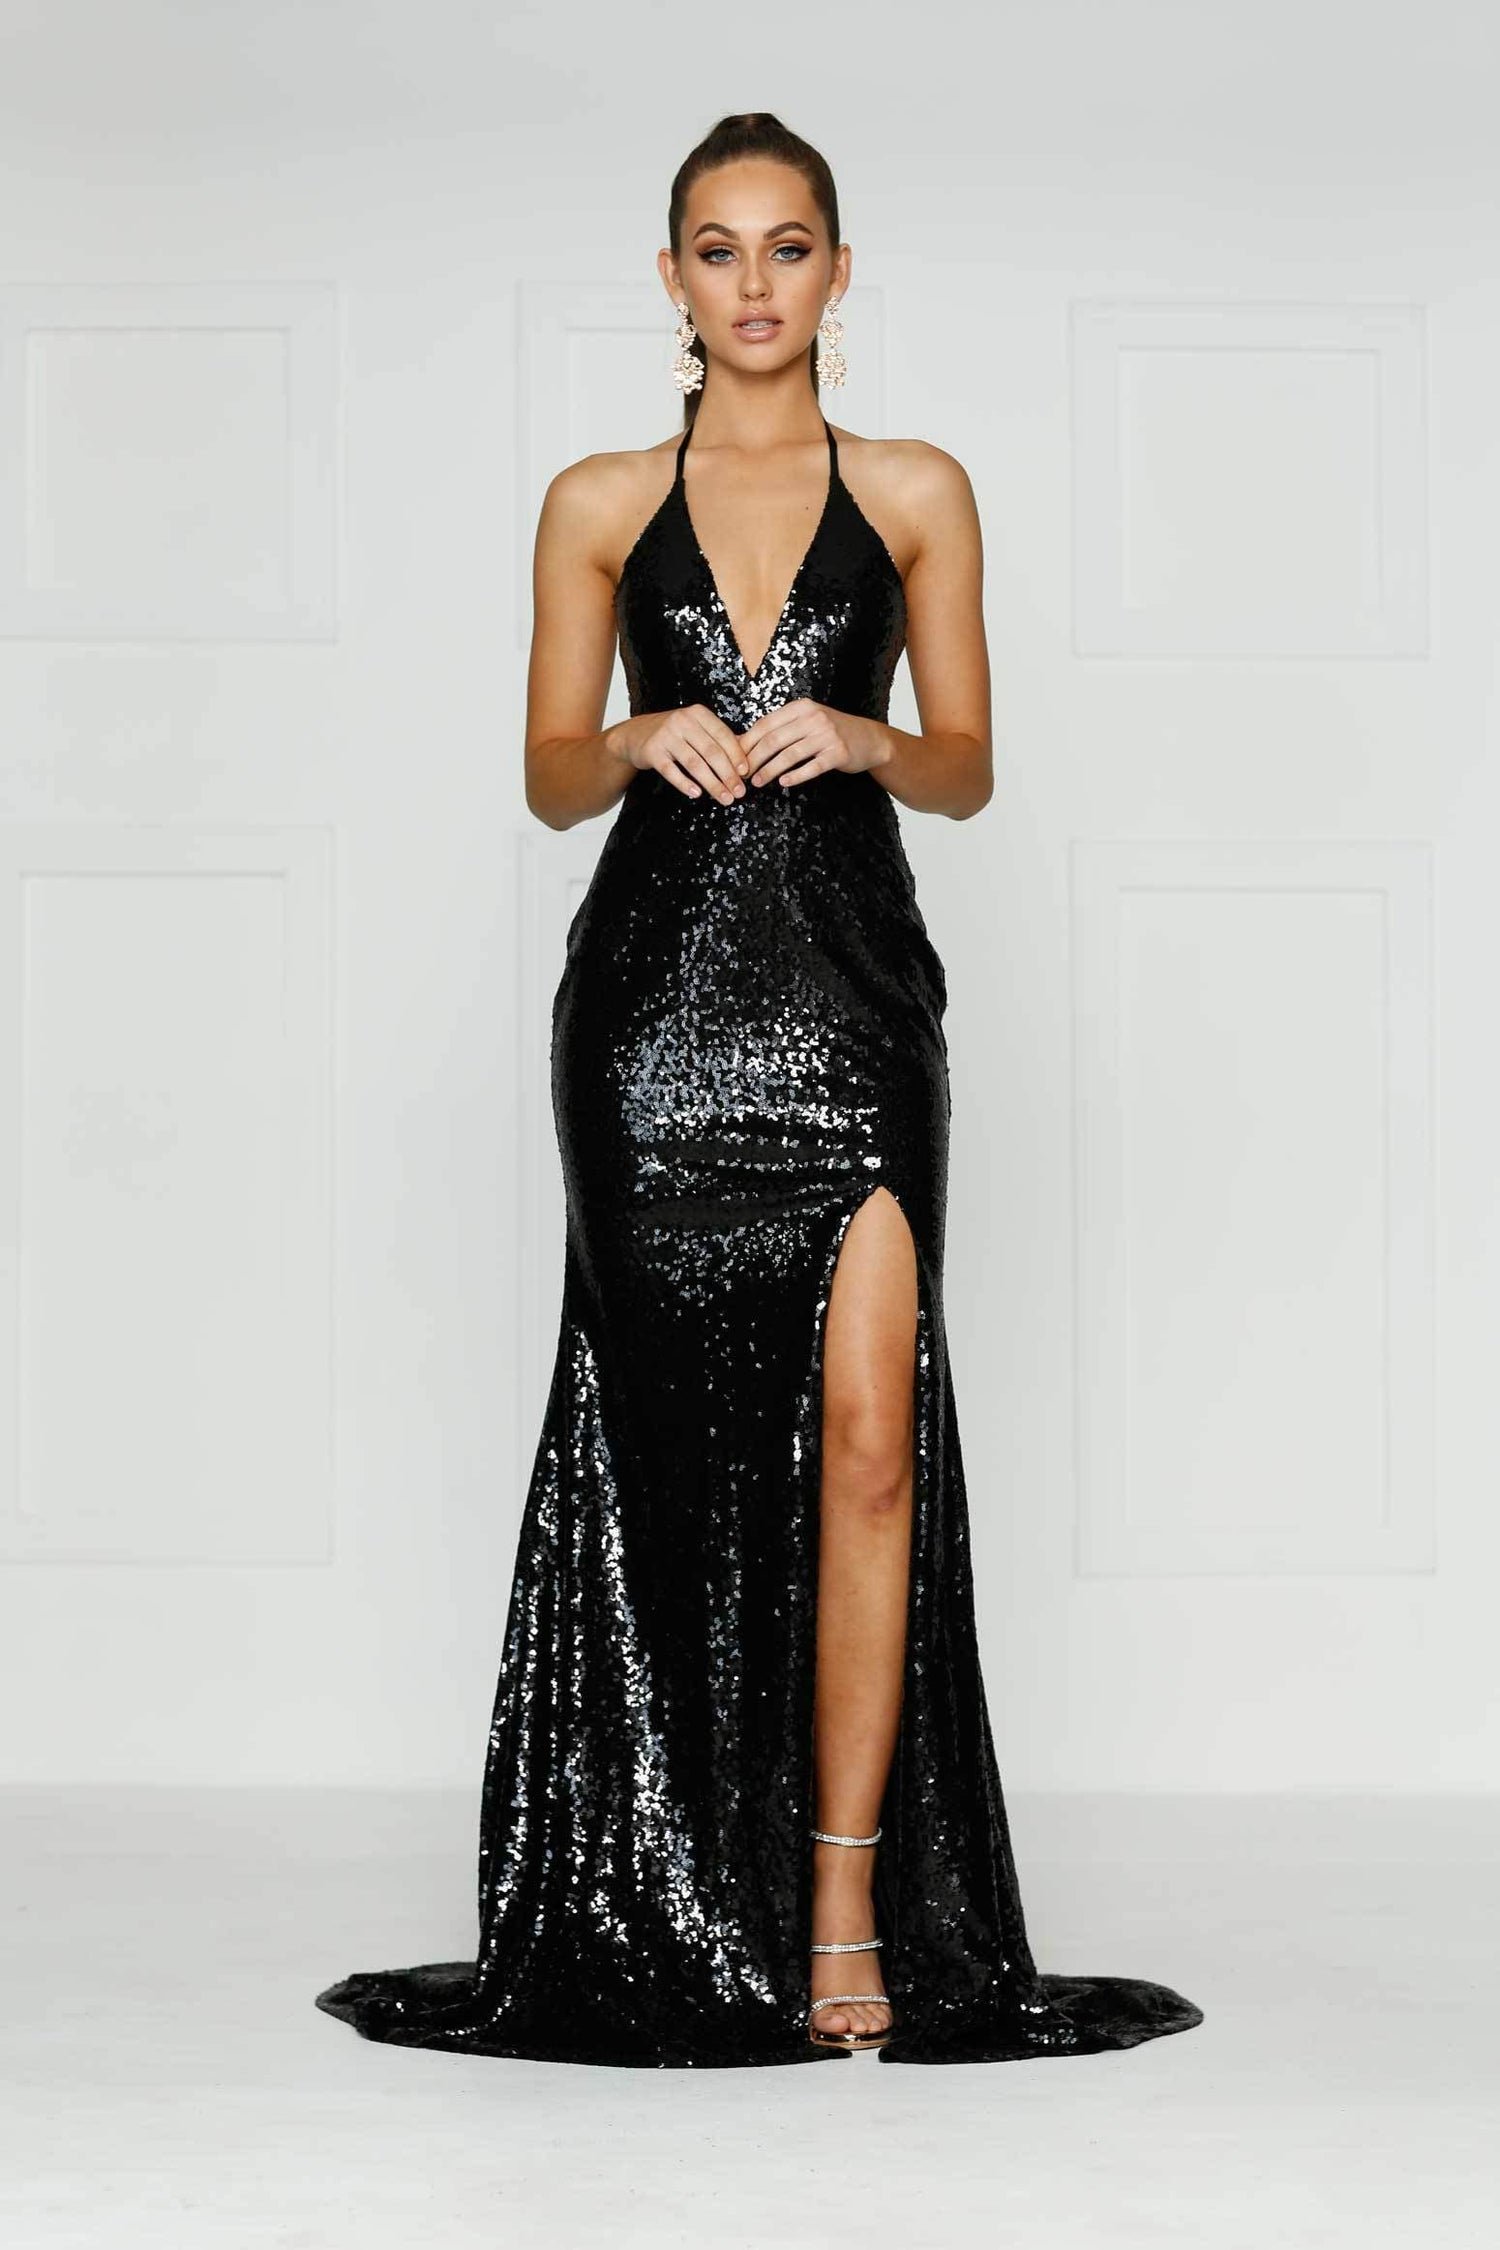 A&N Kylie- Black Sequin Dress with Low Back and Side Slit